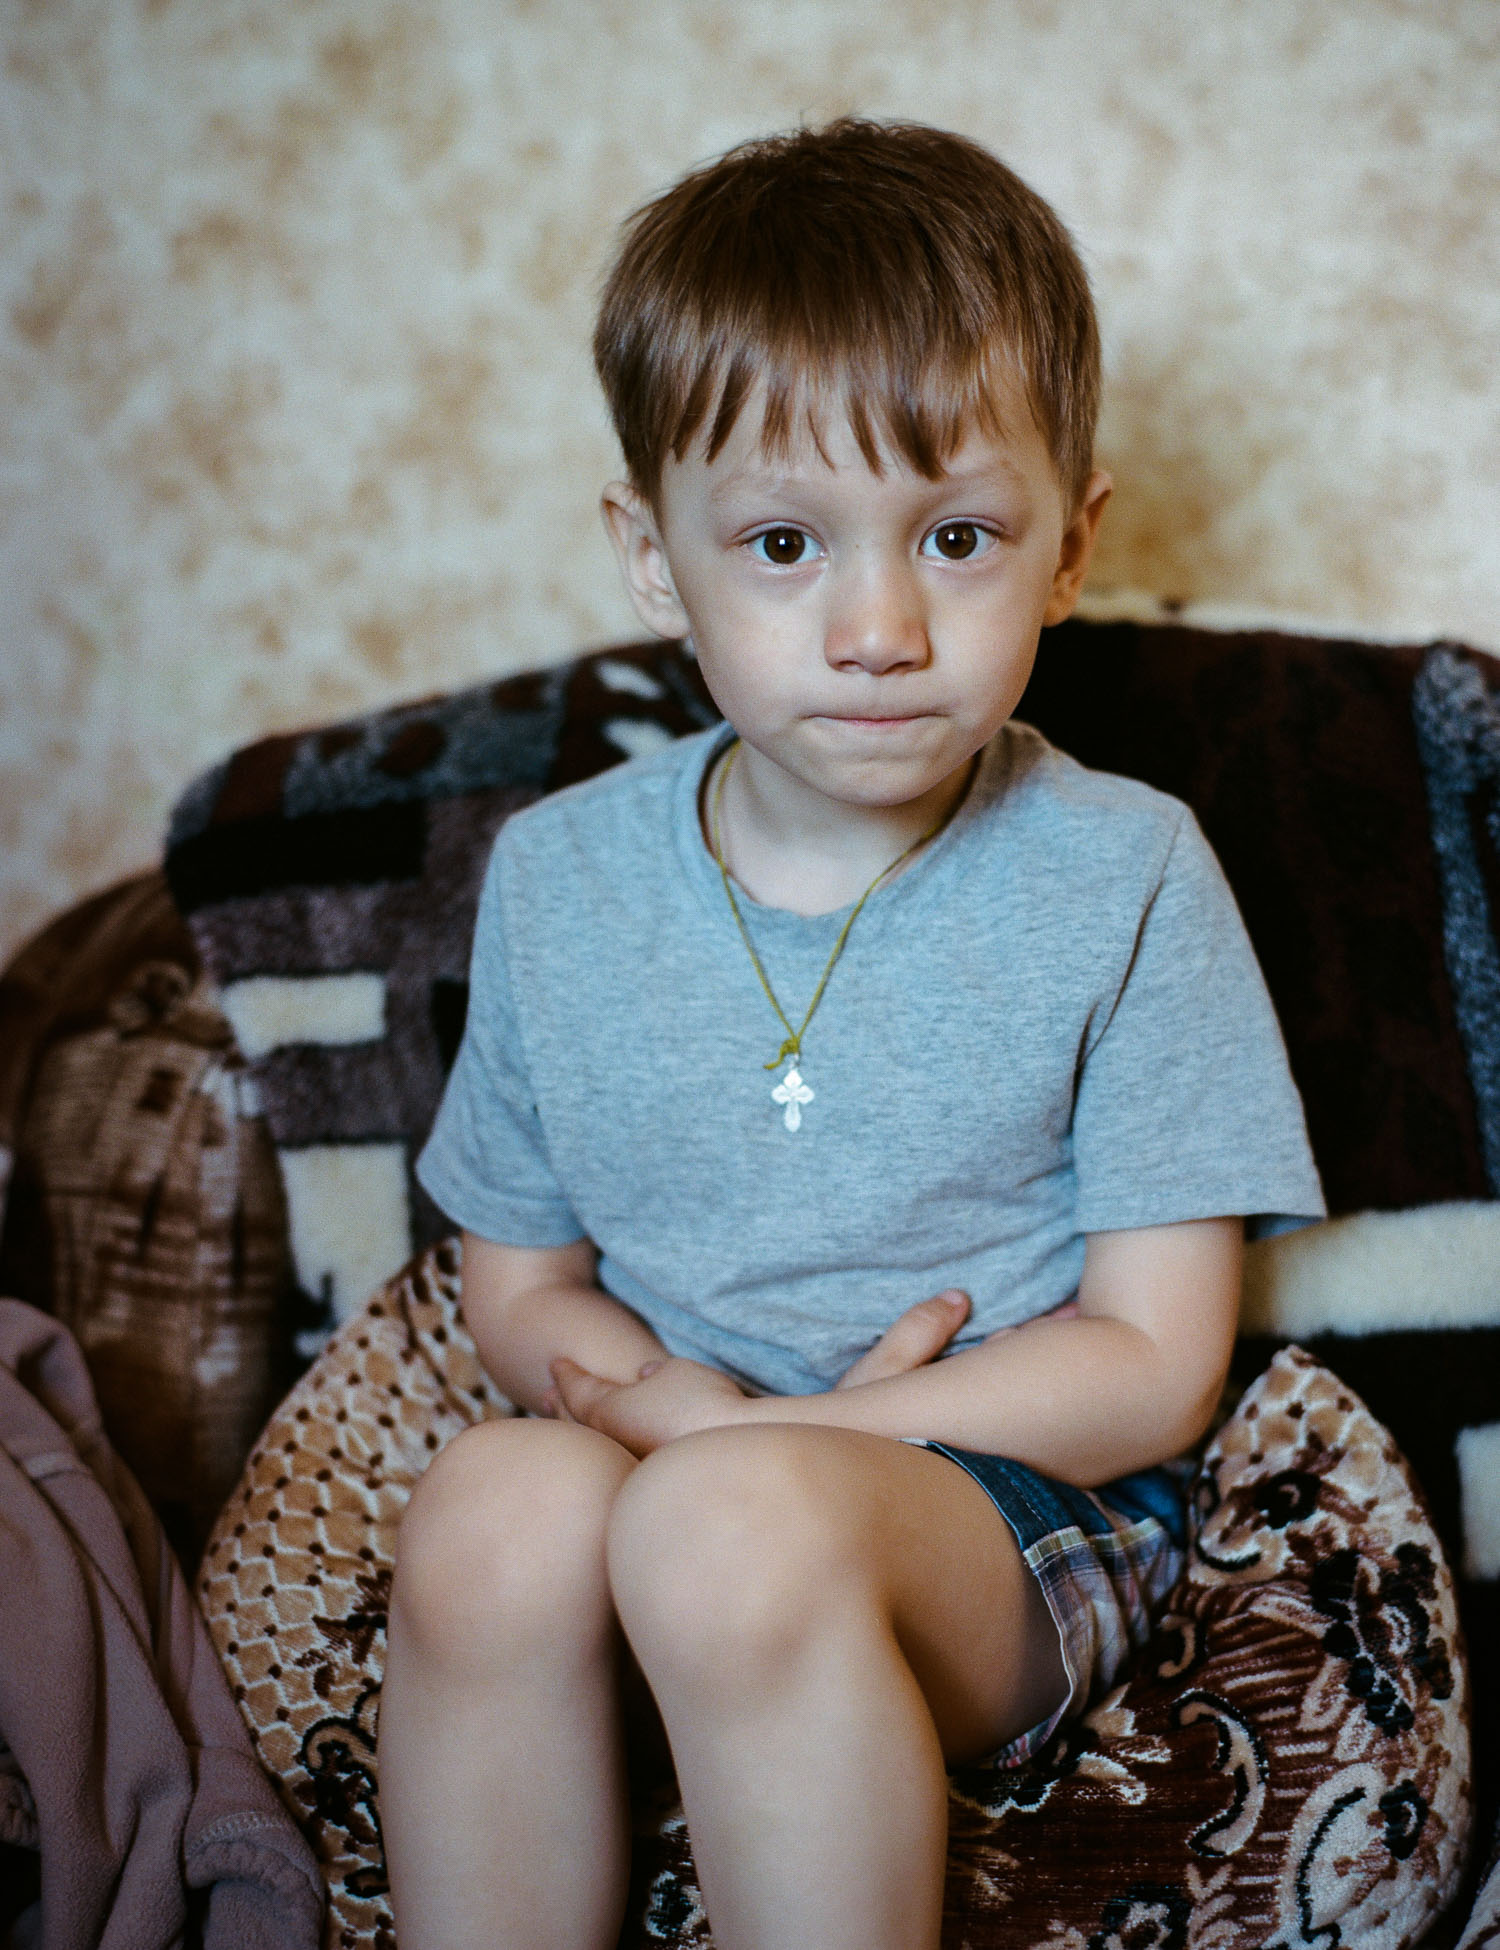 Nikolay's son is preparing to tell us a Poem which he learned for us. Photo: Contax 645 + Kodak